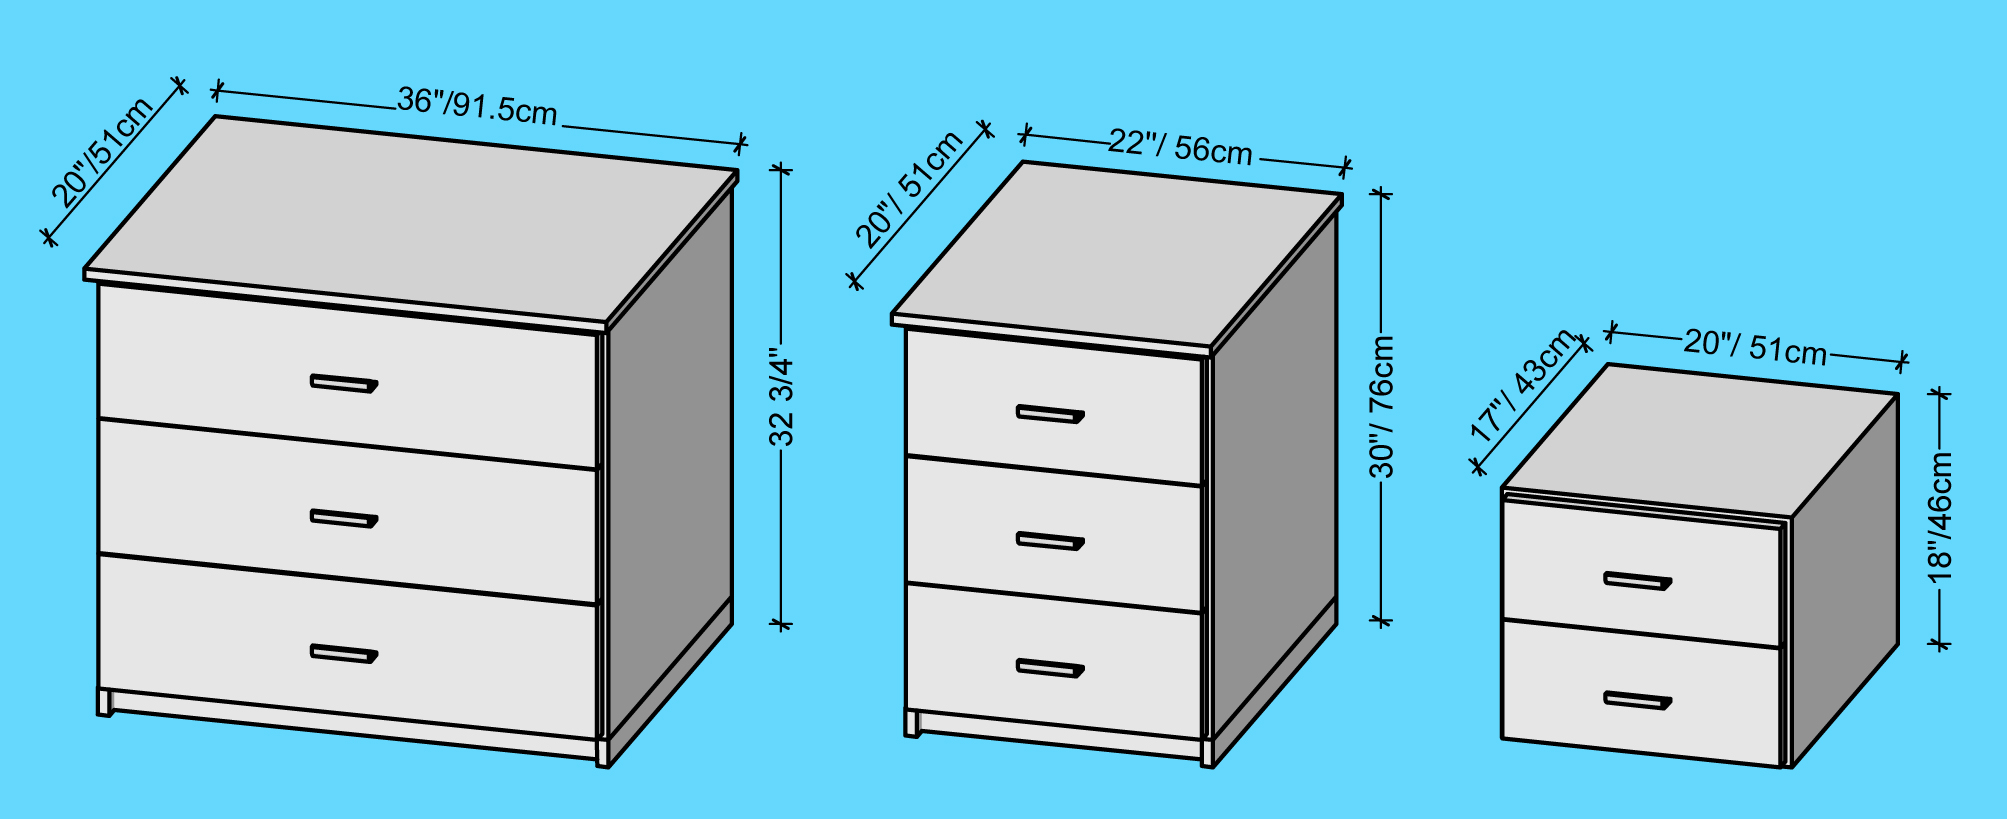 Attirant Bedside Chest Dimensions, Bedside Chest Measurements, Bedside Chest Height,  Bedside Chest Size